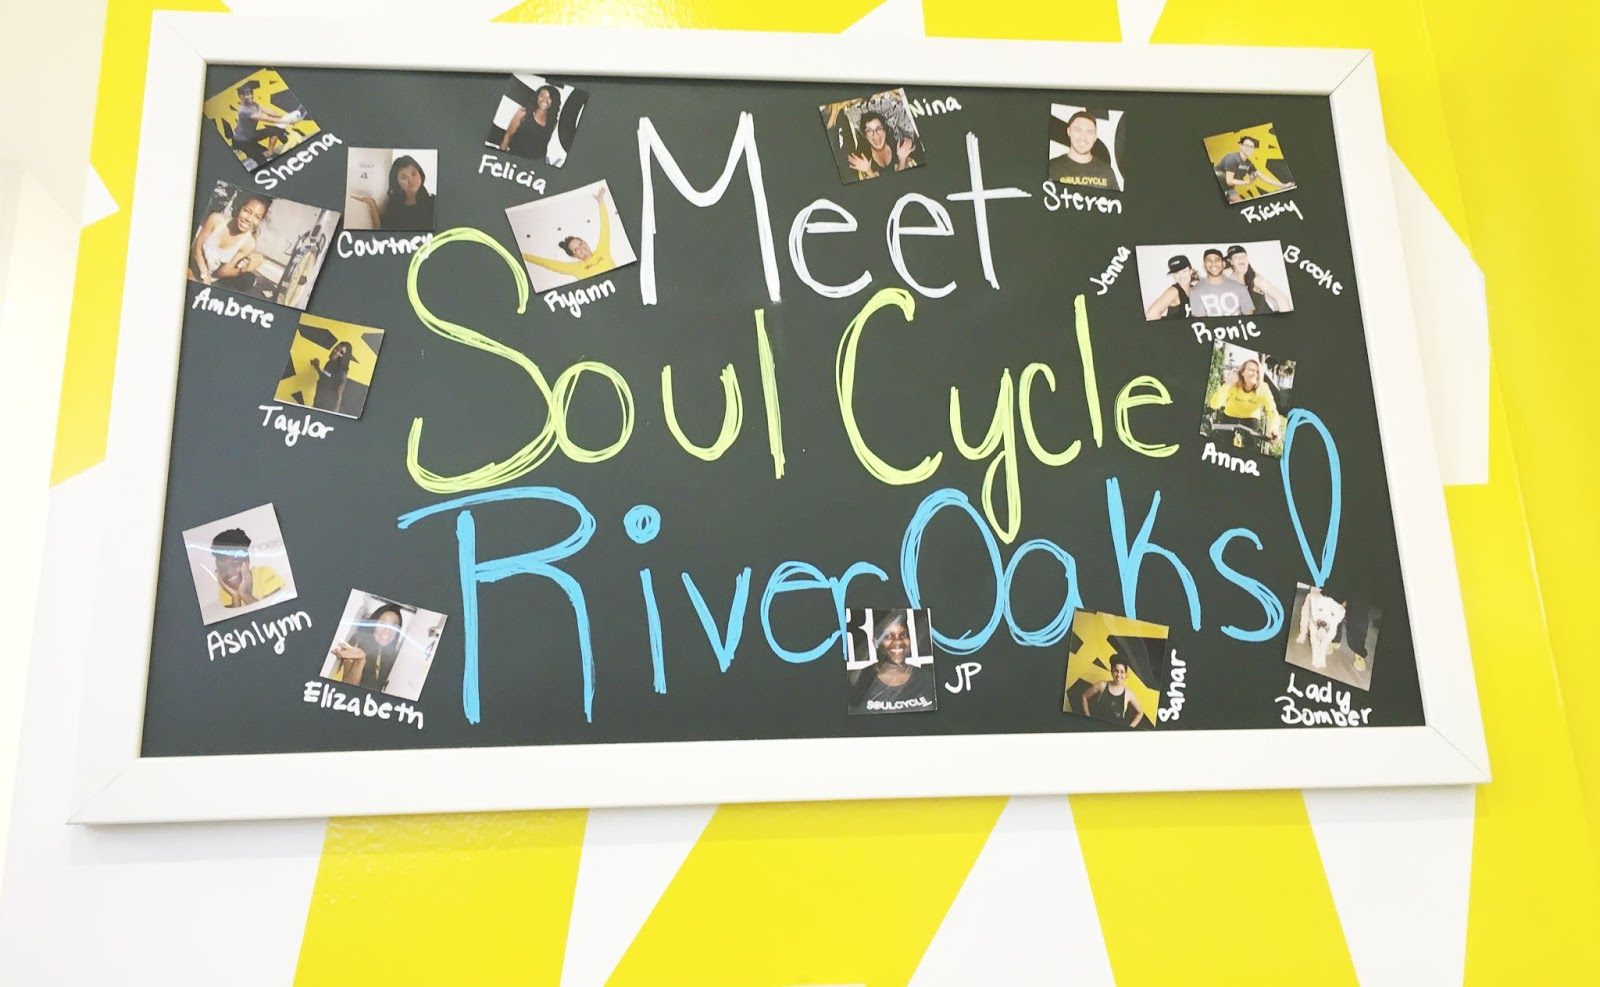 SoulCycle - A cycling fitness studio in Houston, Texas